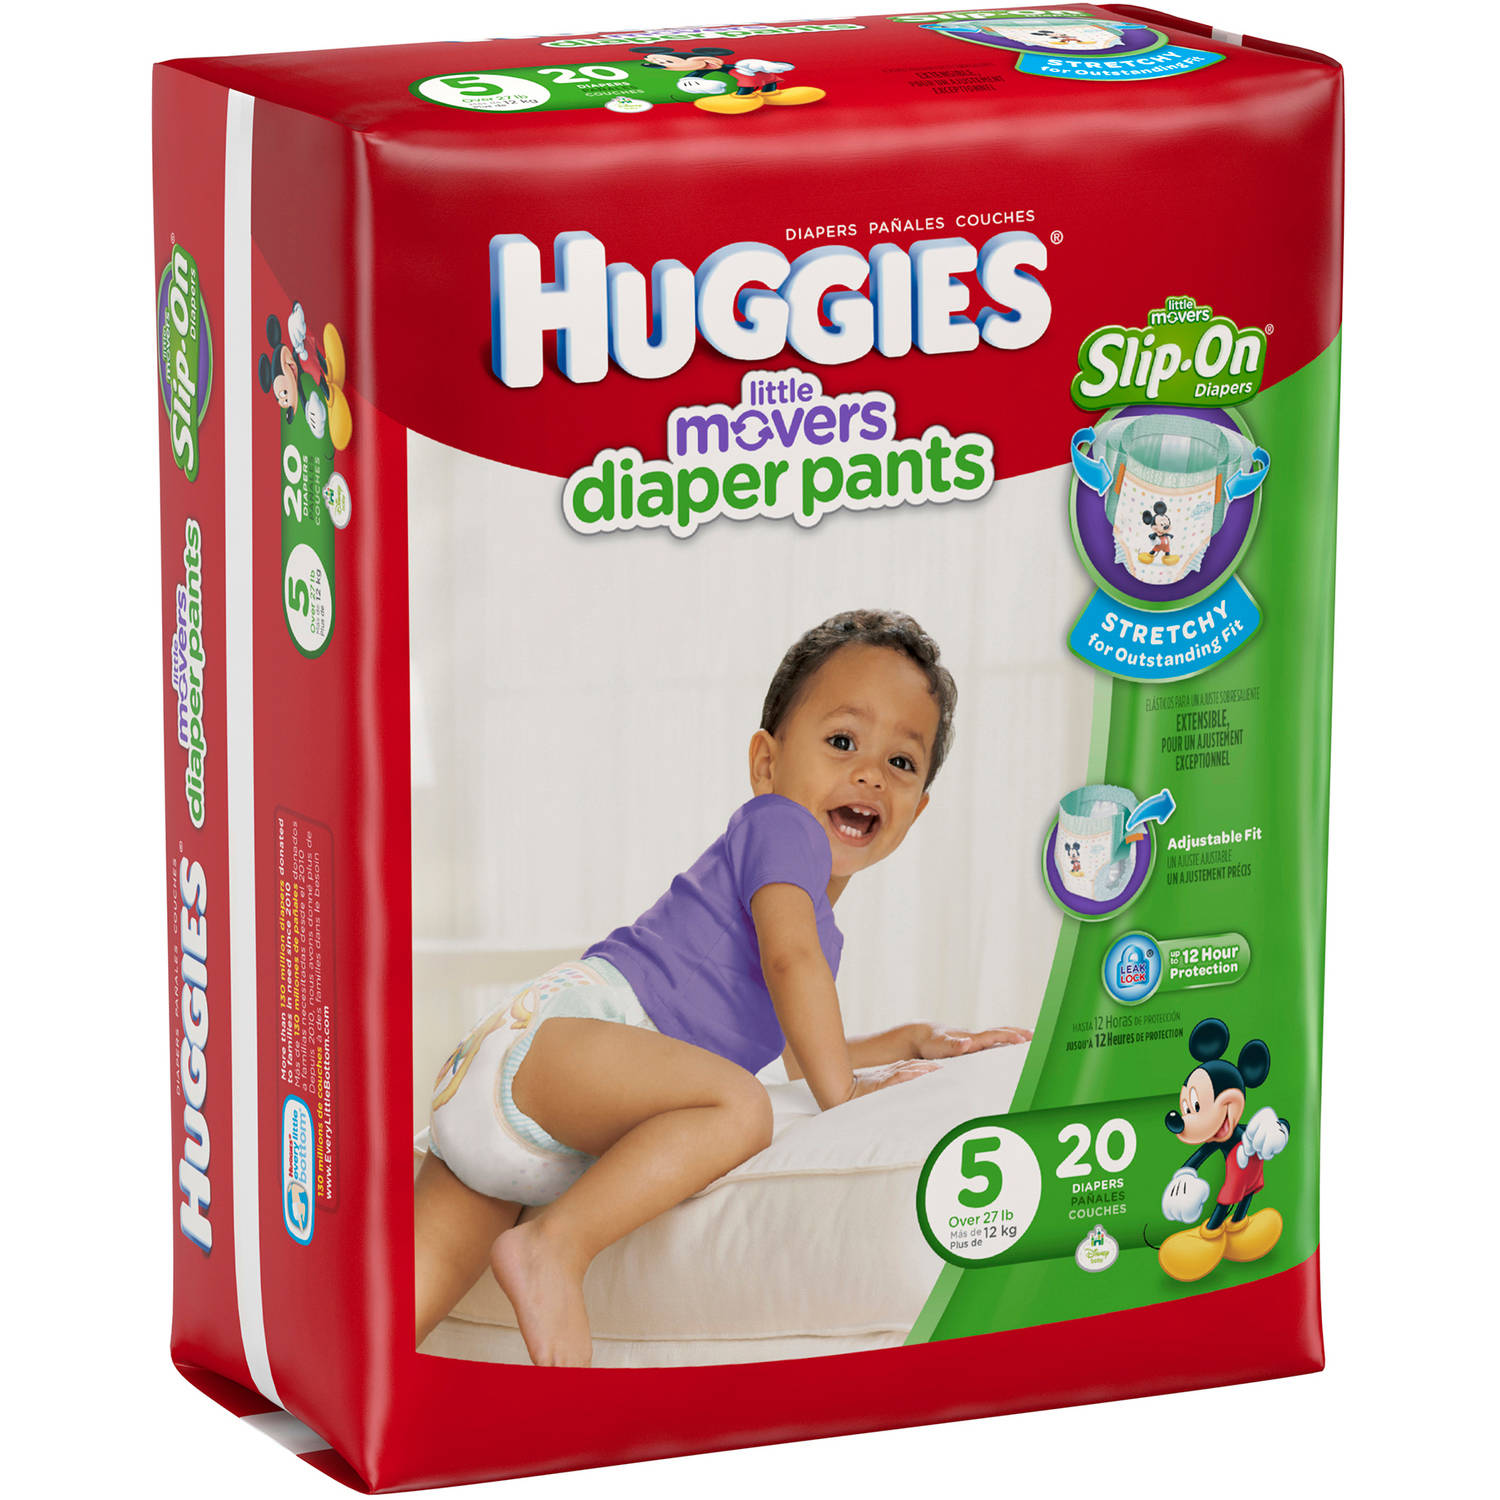 HUGGIES Little Movers Slip On Diapers, Jumbo Pack, Size 5 (20 Diapers)